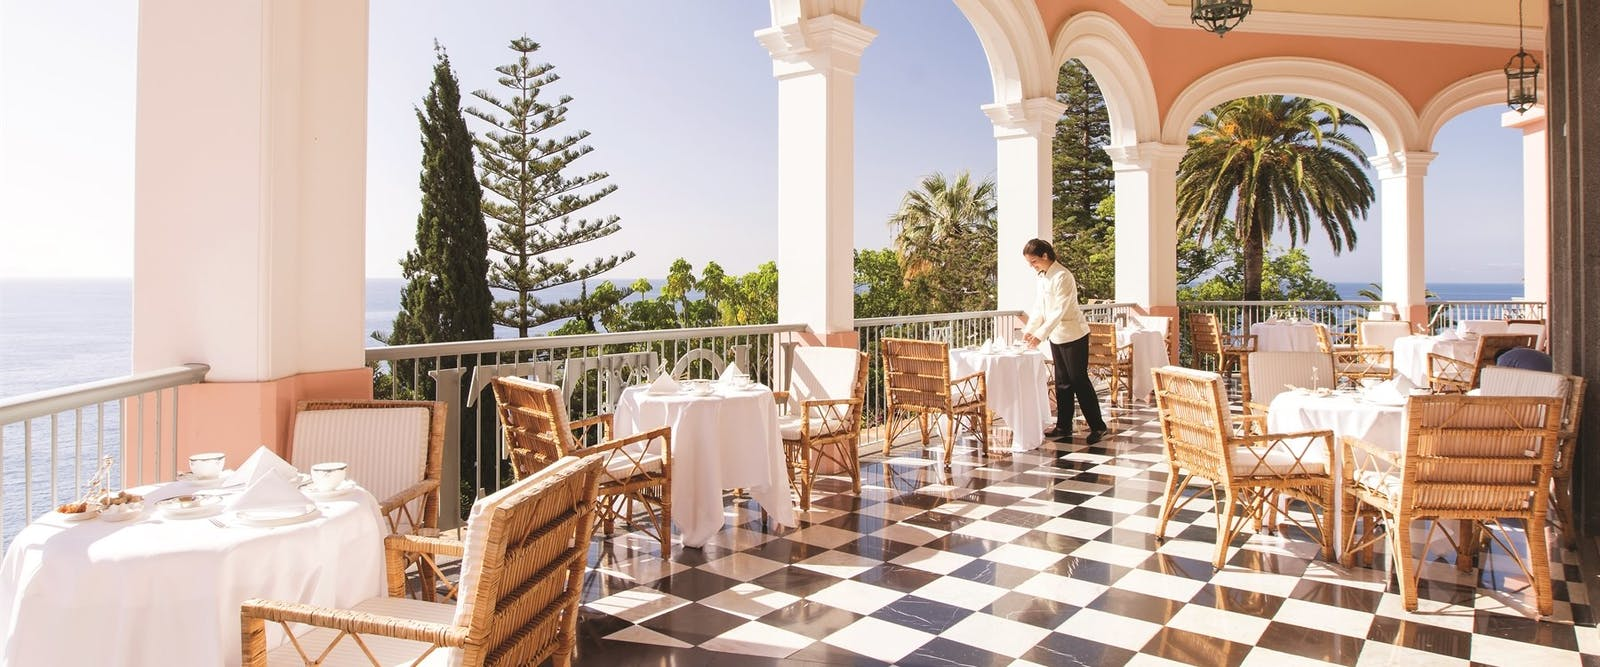 Afternoon Tea at Reid's Palace, A Belmond Hotel, Madeira, Portugal